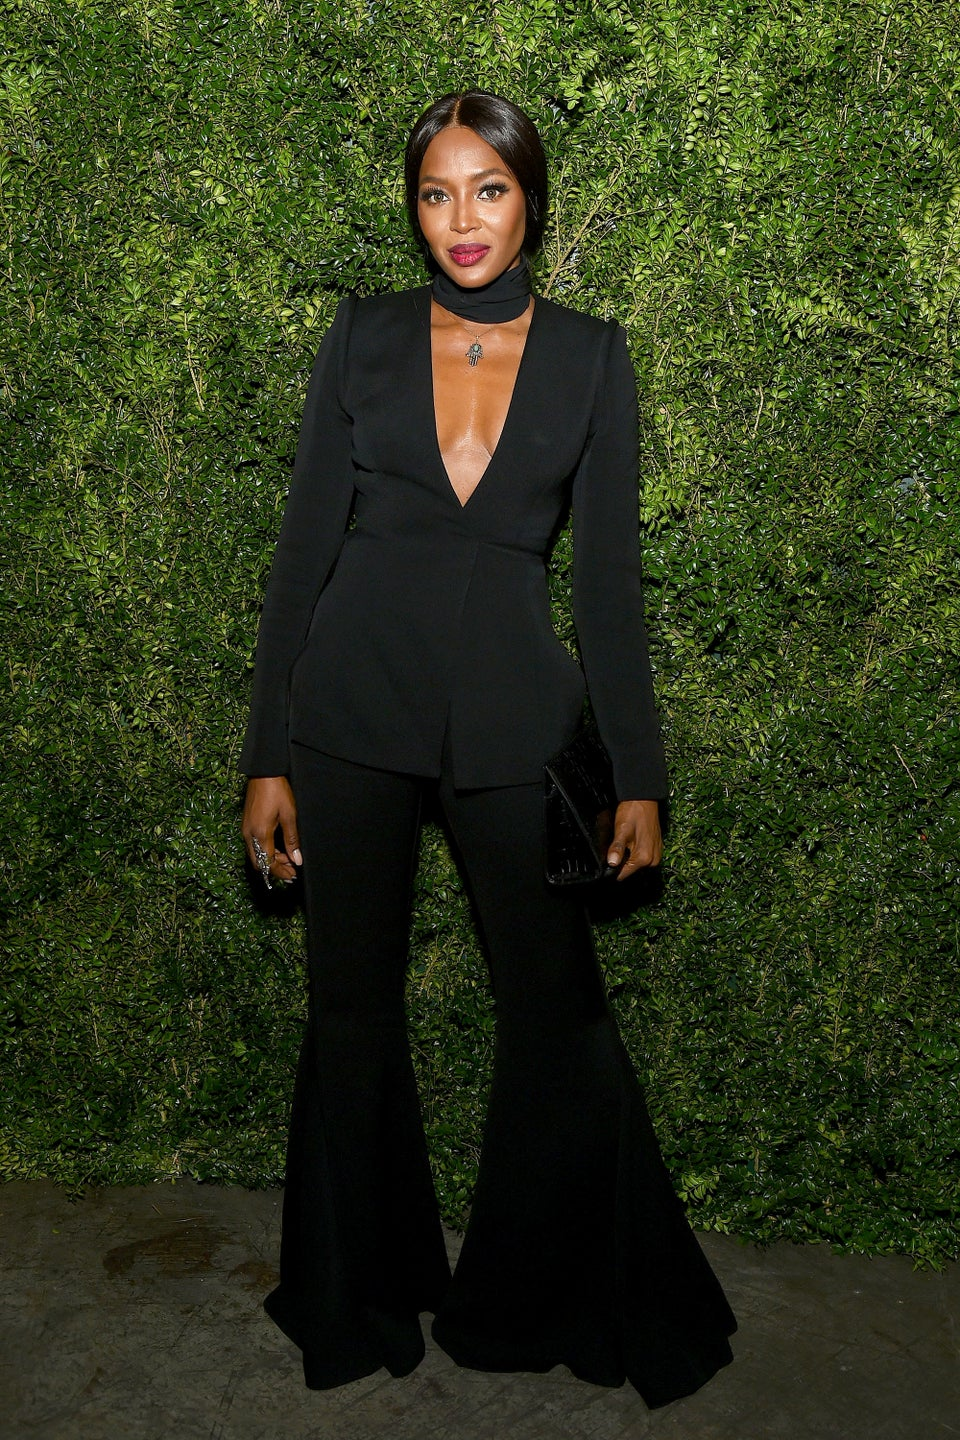 Look of the Day: Naomi Campbell is a Stunner Per Usual in All Black